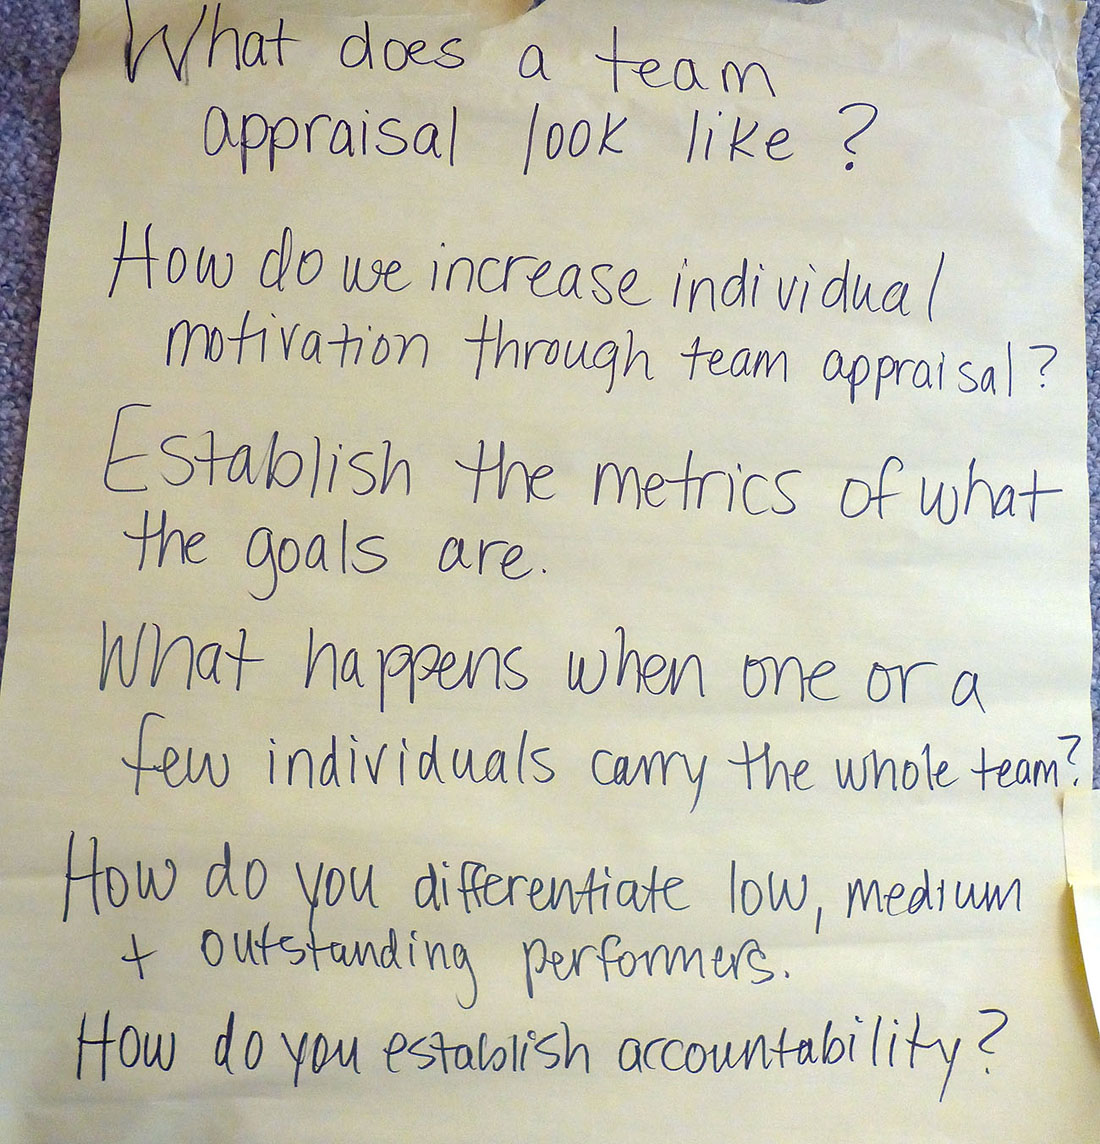 A screenshot shows a handwritten text reading the important points for a team-based review.